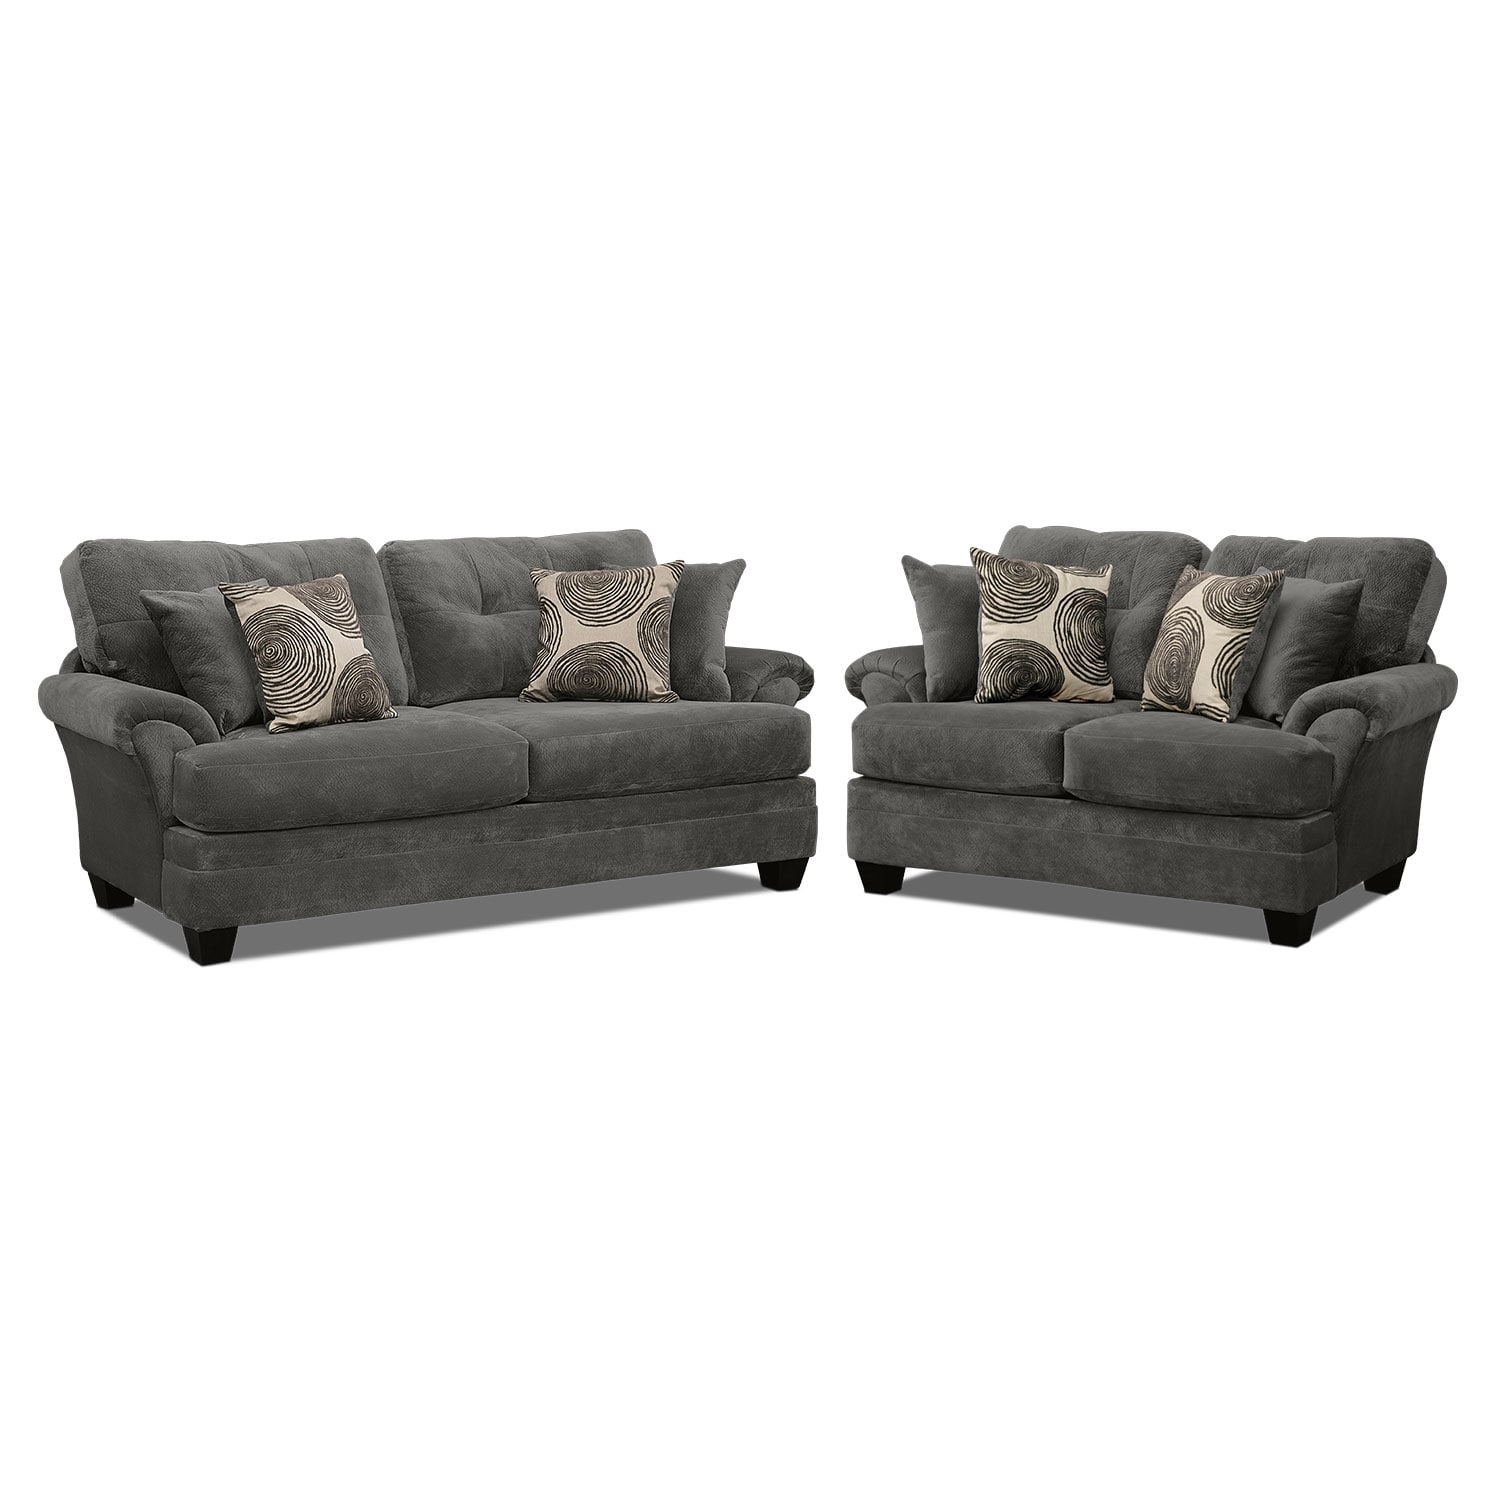 Cordelle Sofa Gray Value City Furniture